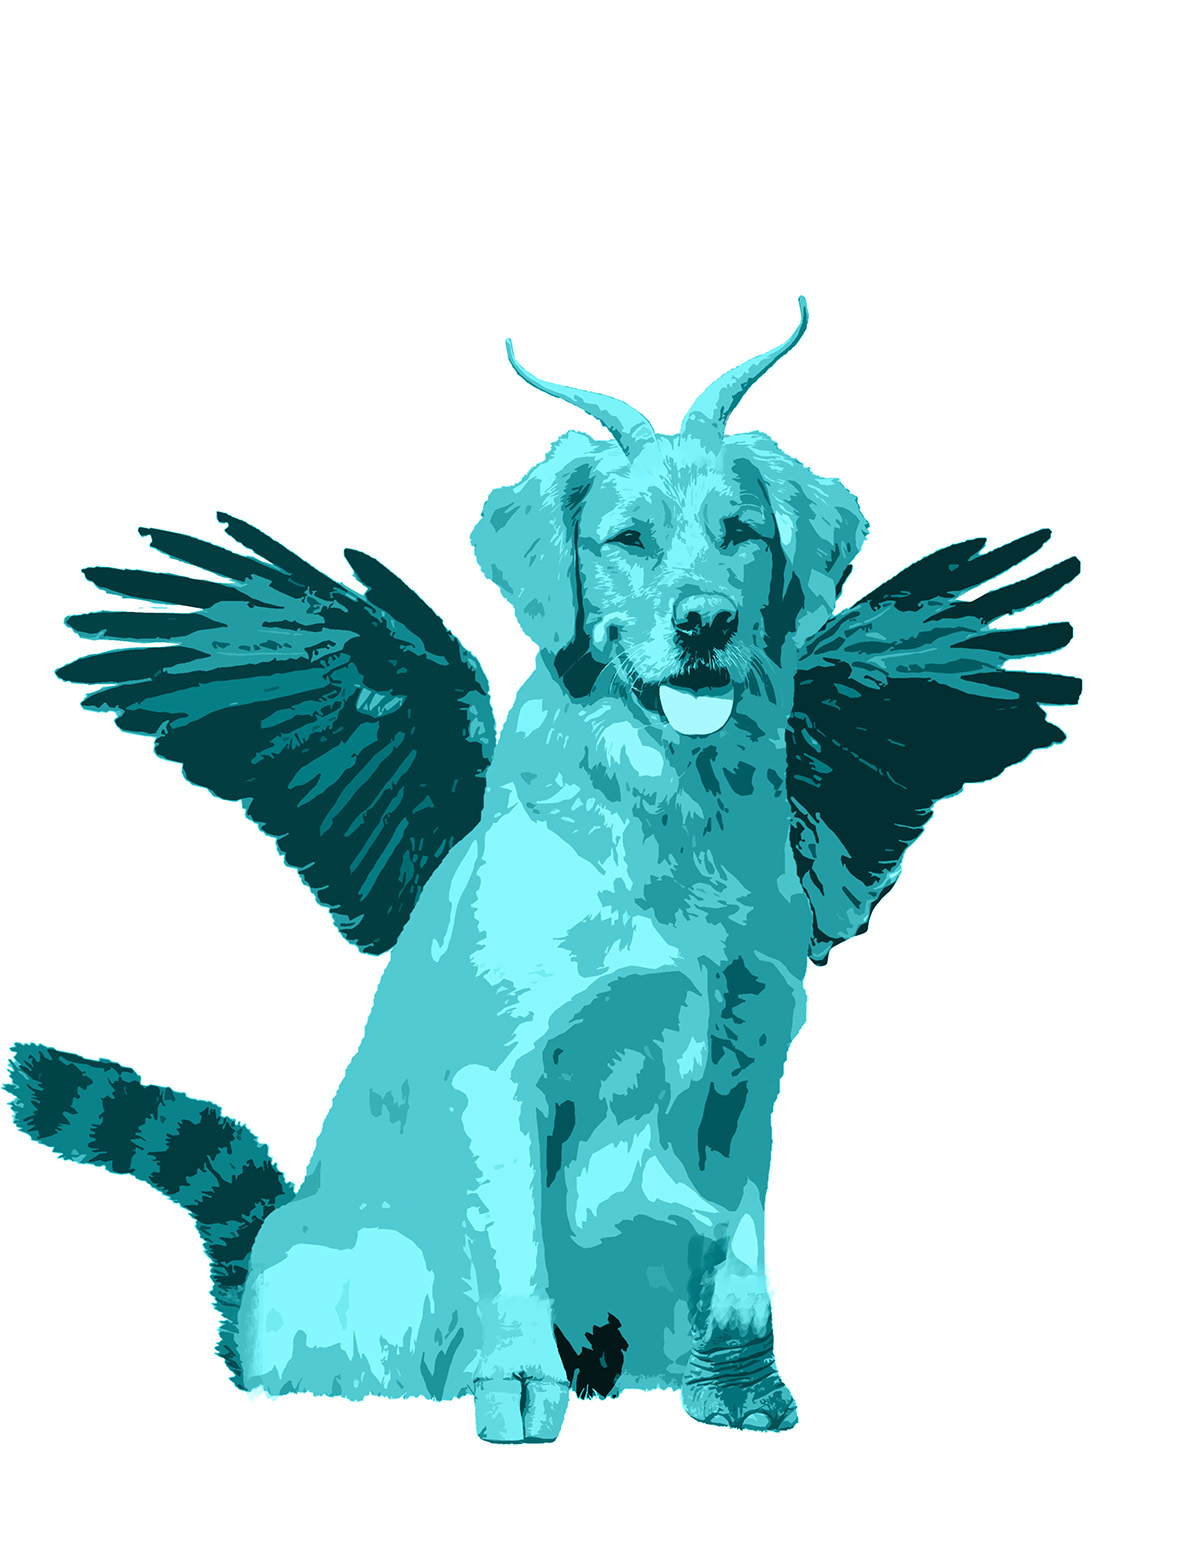 A blue dog with horns, wings and hooves.